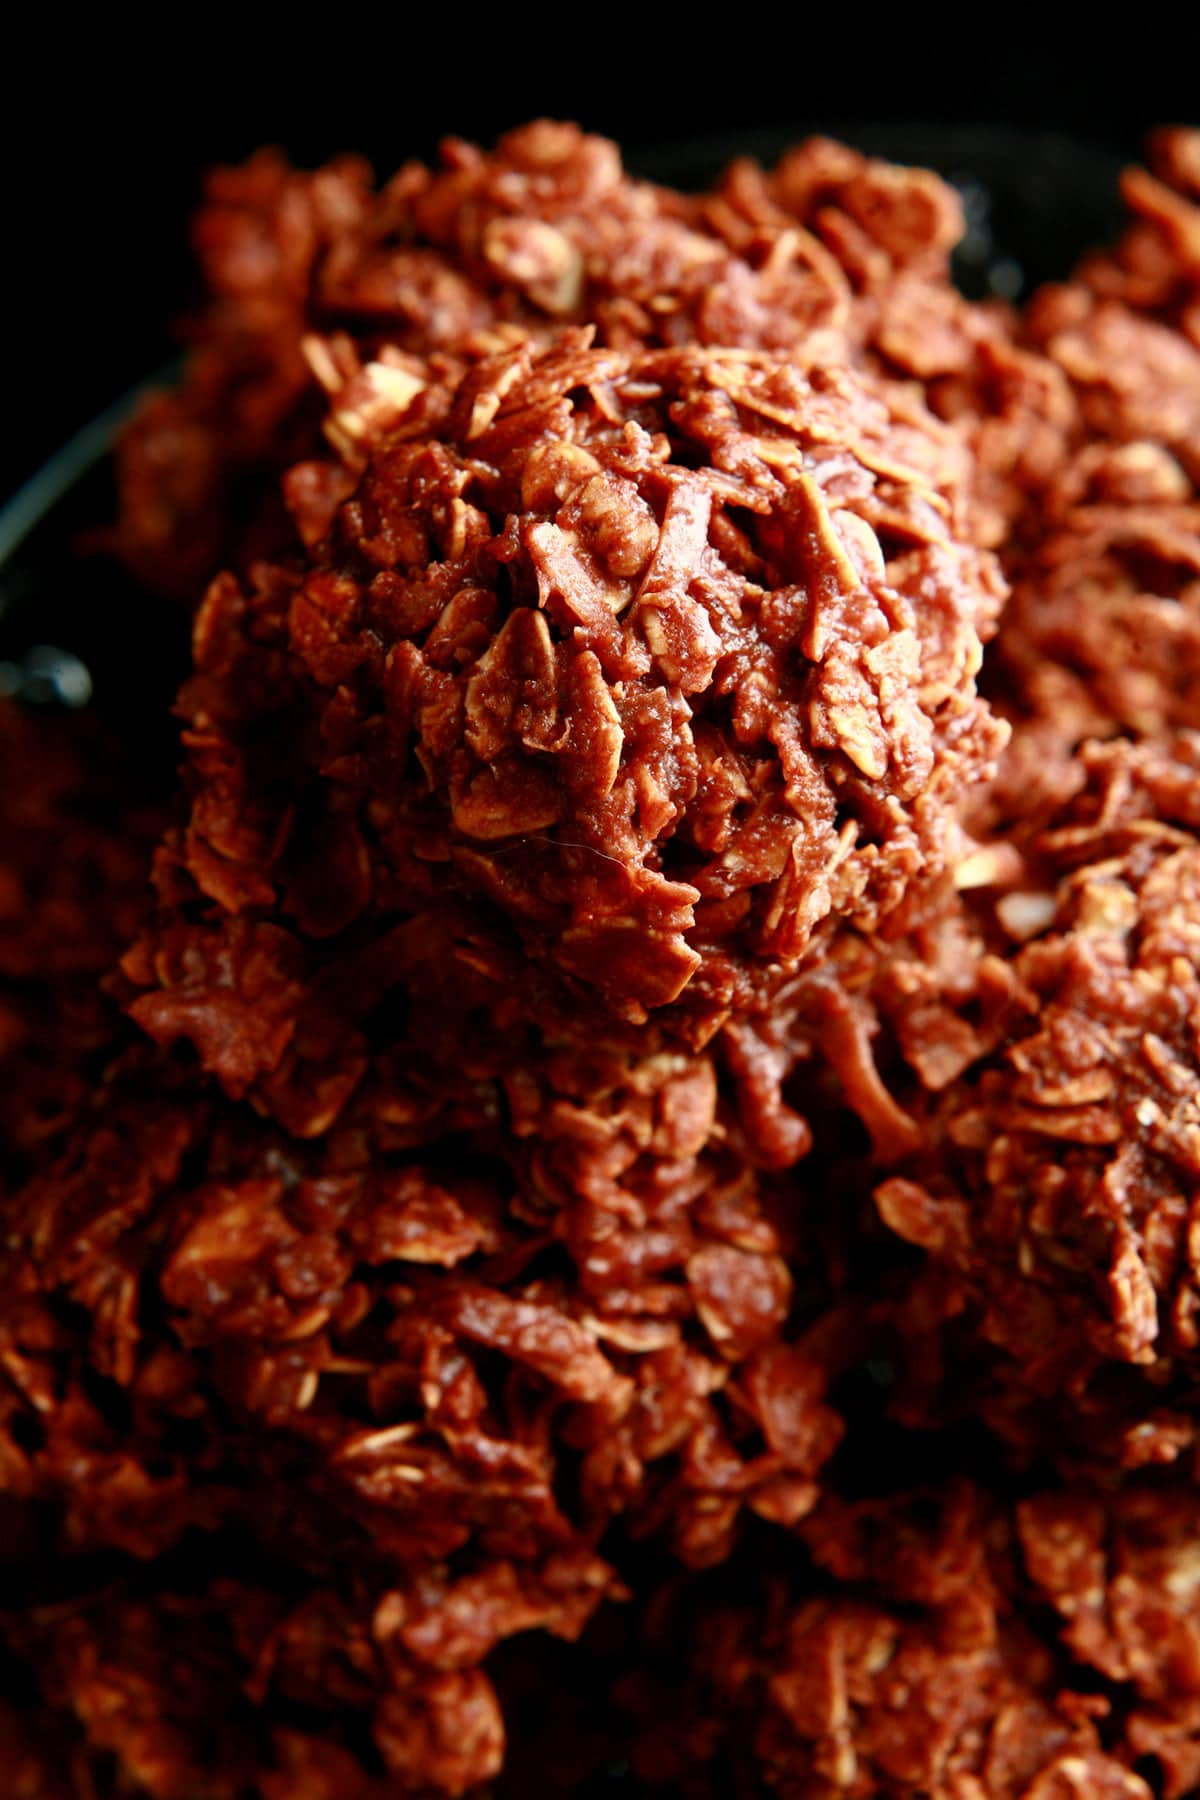 A small plate is piled high with chocolate no-bake cookies. The oats and coconut are visible, completely covered in chocolate.